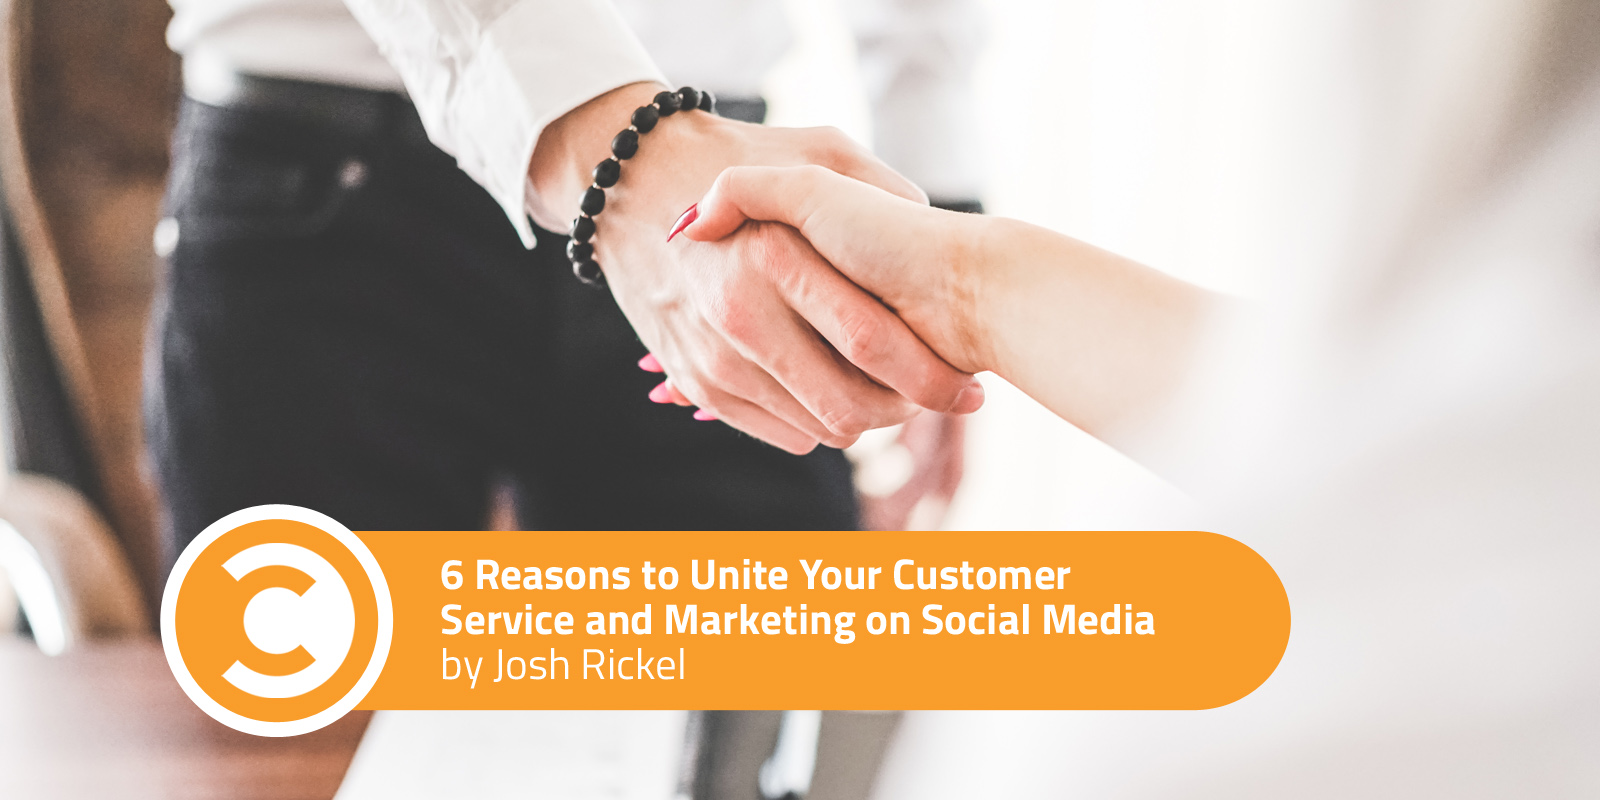 6 Reasons to Unite Your Customer Service and Marketing on Social Media